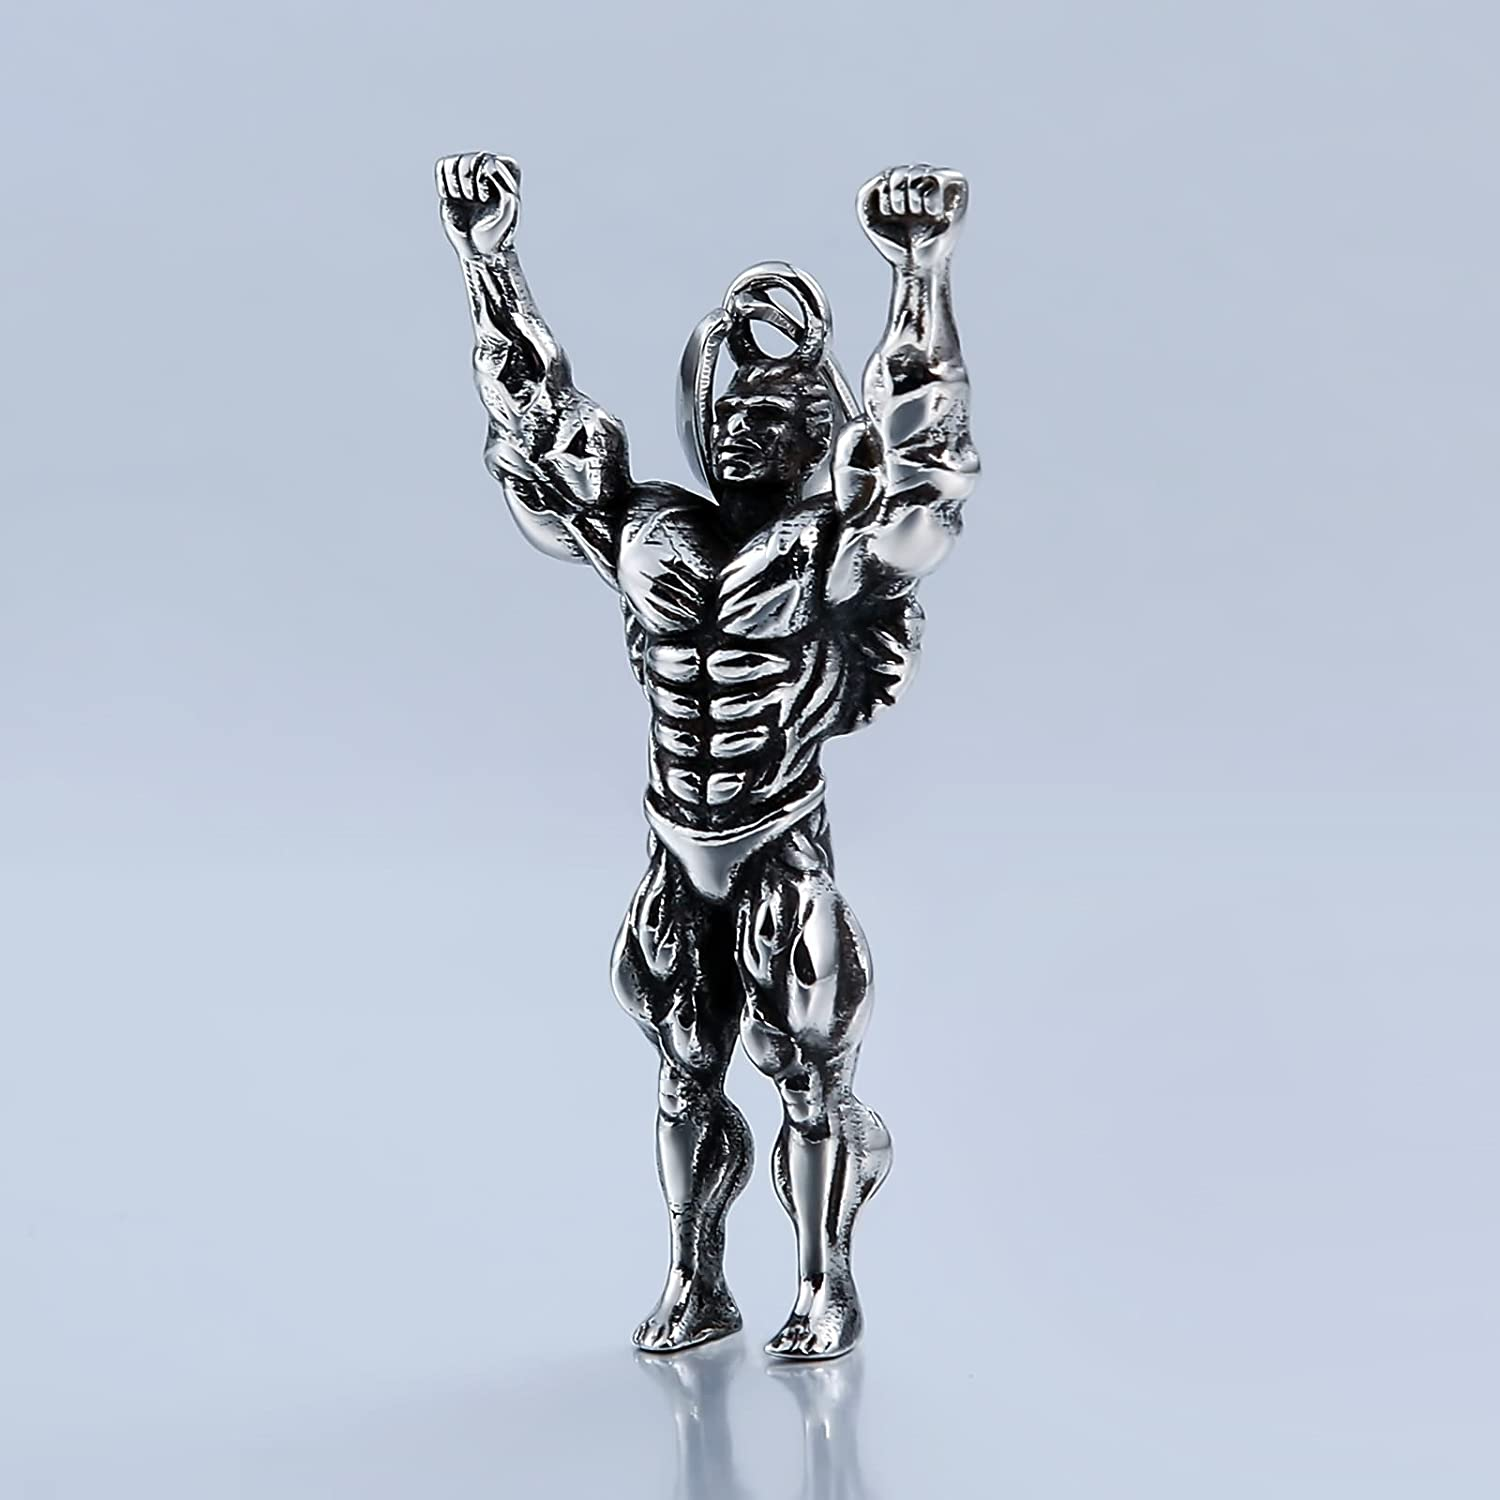 Aokarry Stainless Steel Pendant for Men Muscle Man Silver Engraved Punk Style